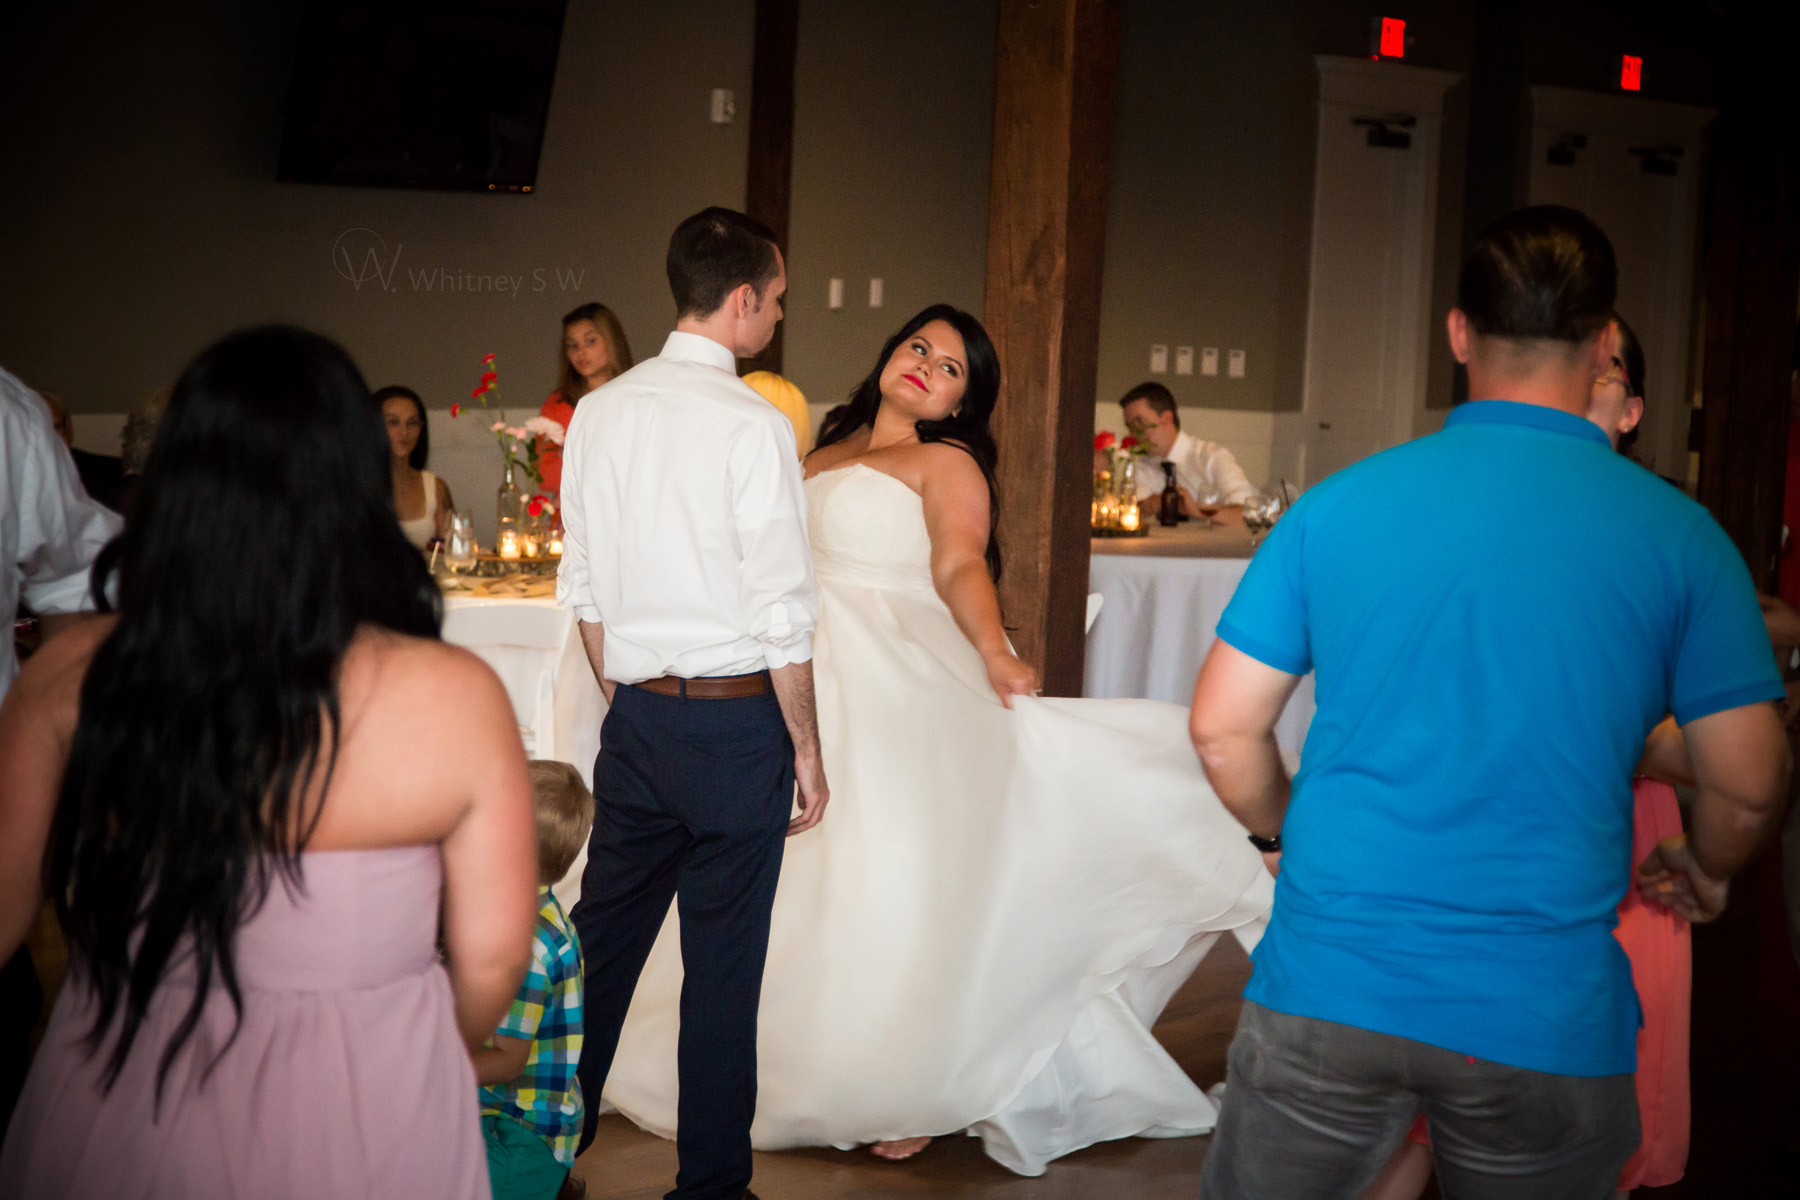 SimpsonFalinWedding_Photography by Whitney S Williams (441).jpg